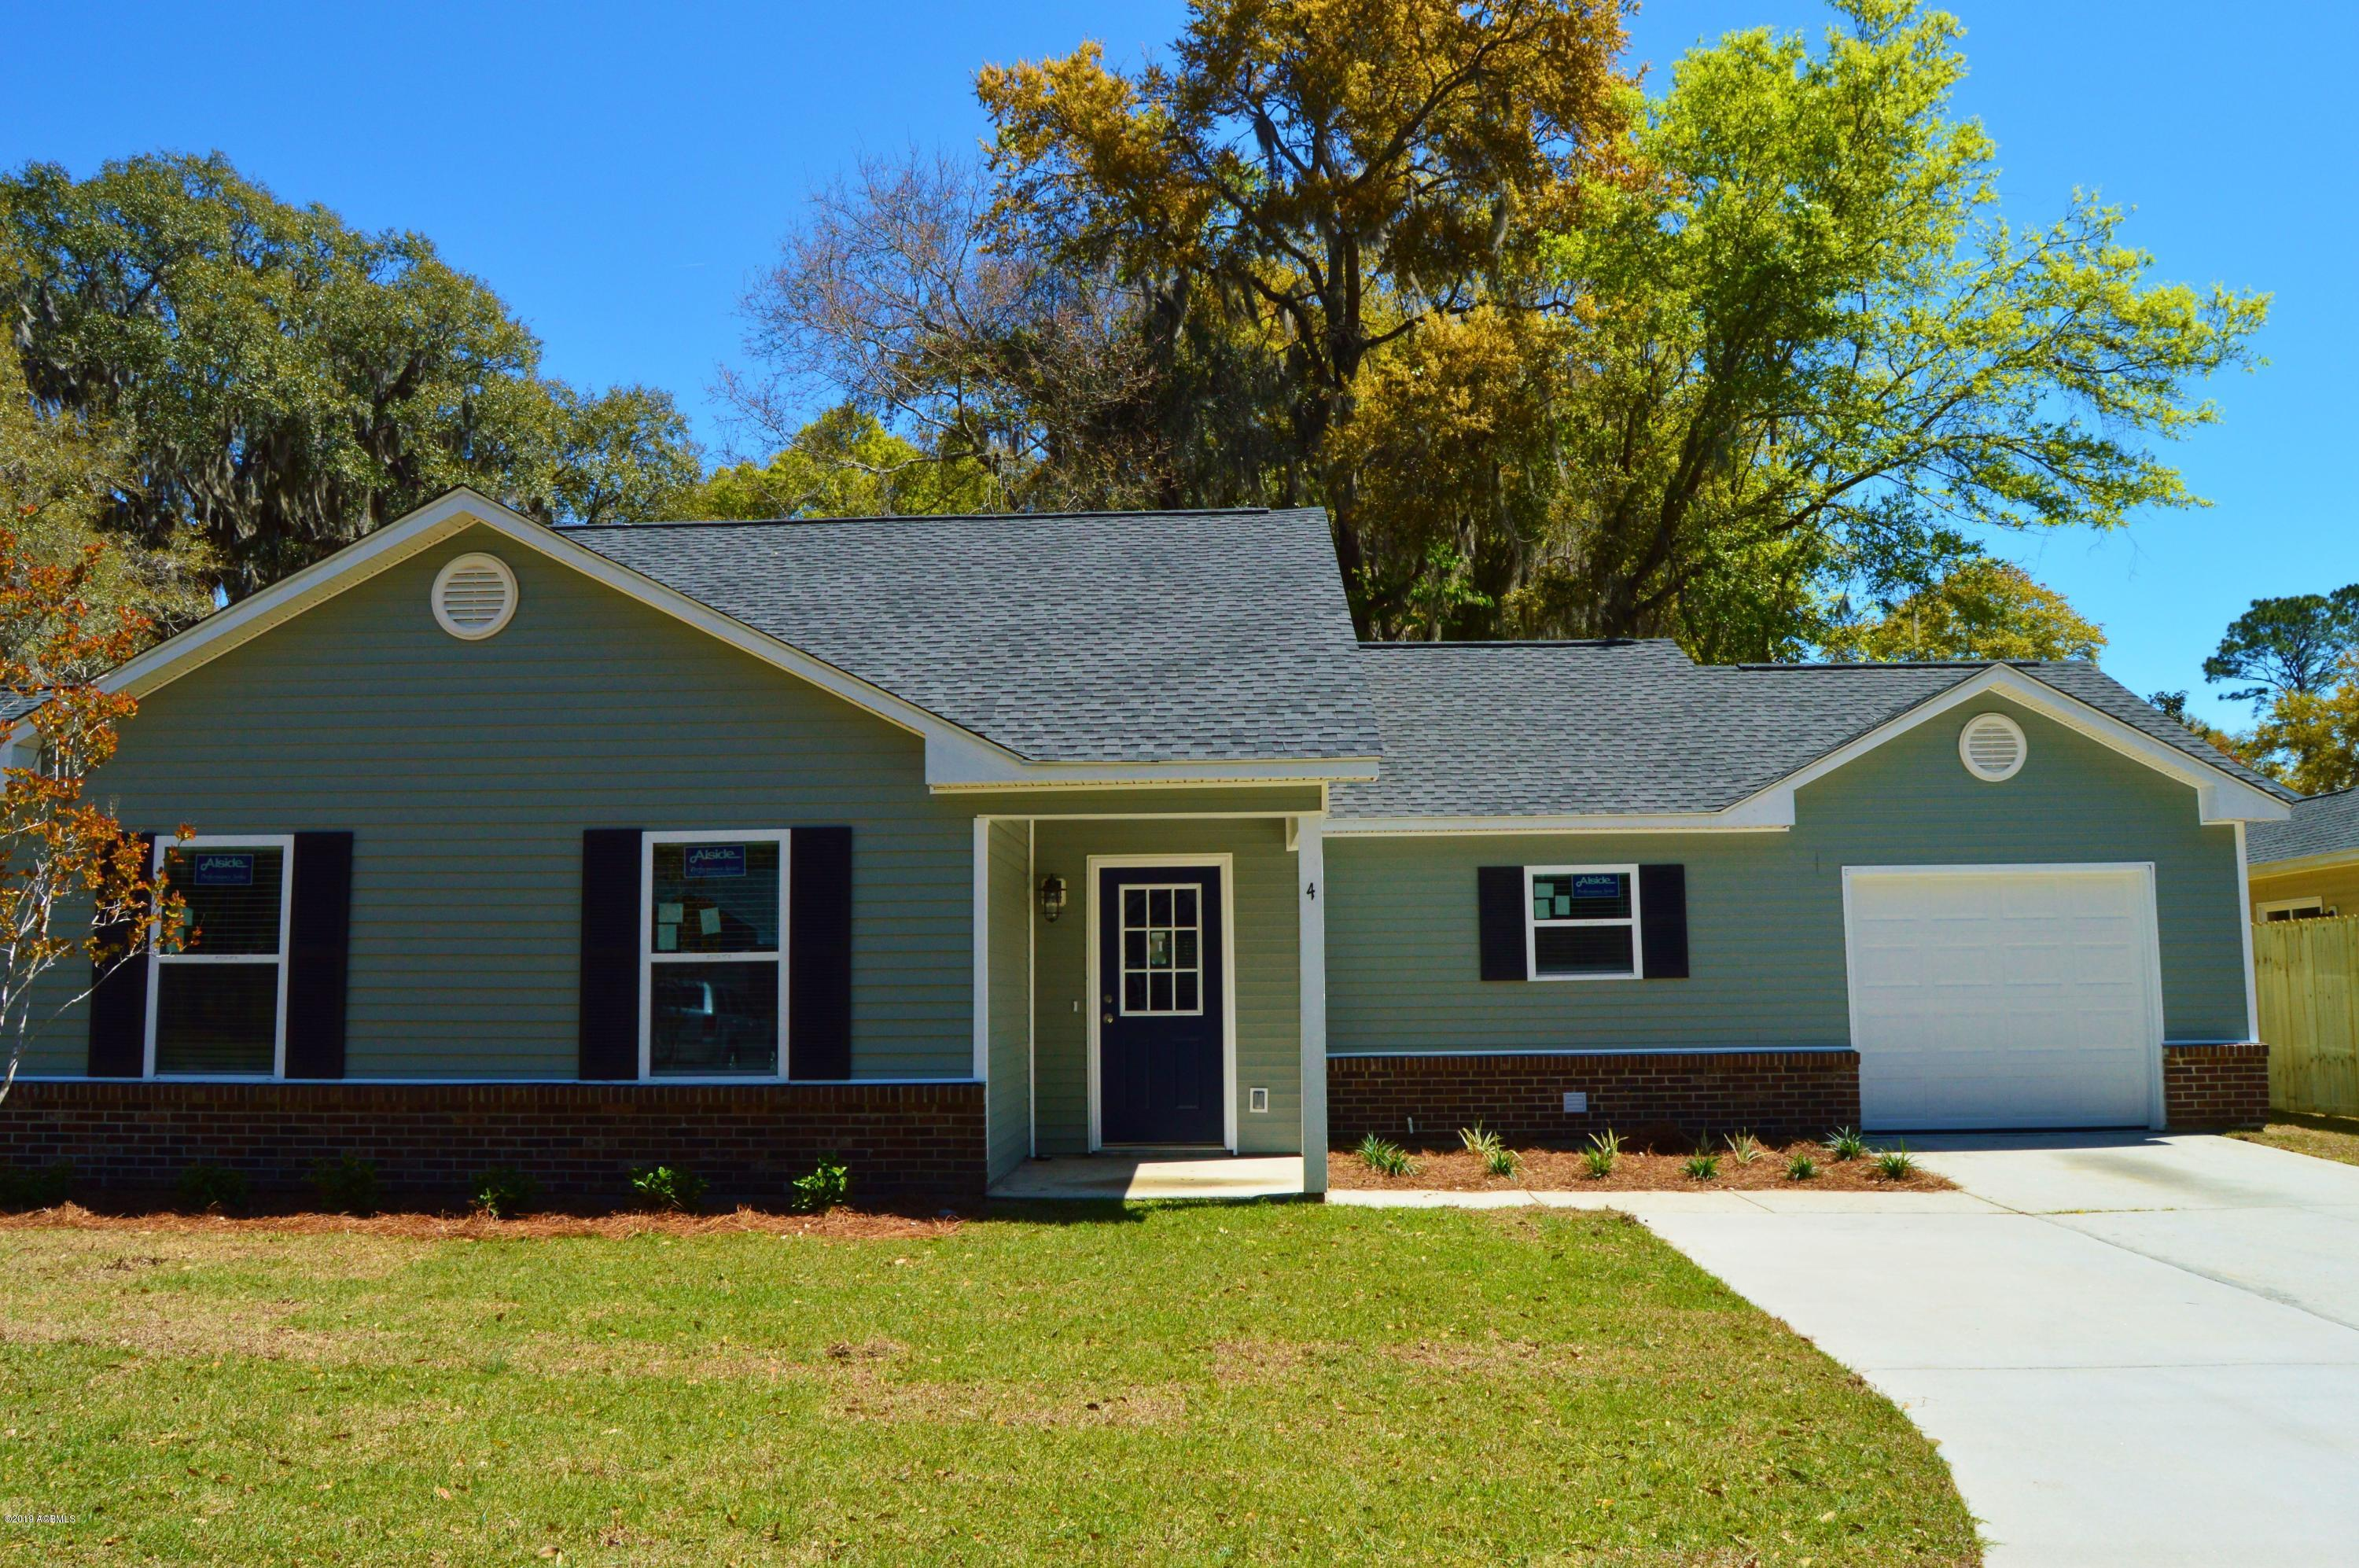 Photo of 4 Avalon Drive, Beaufort, SC 29907